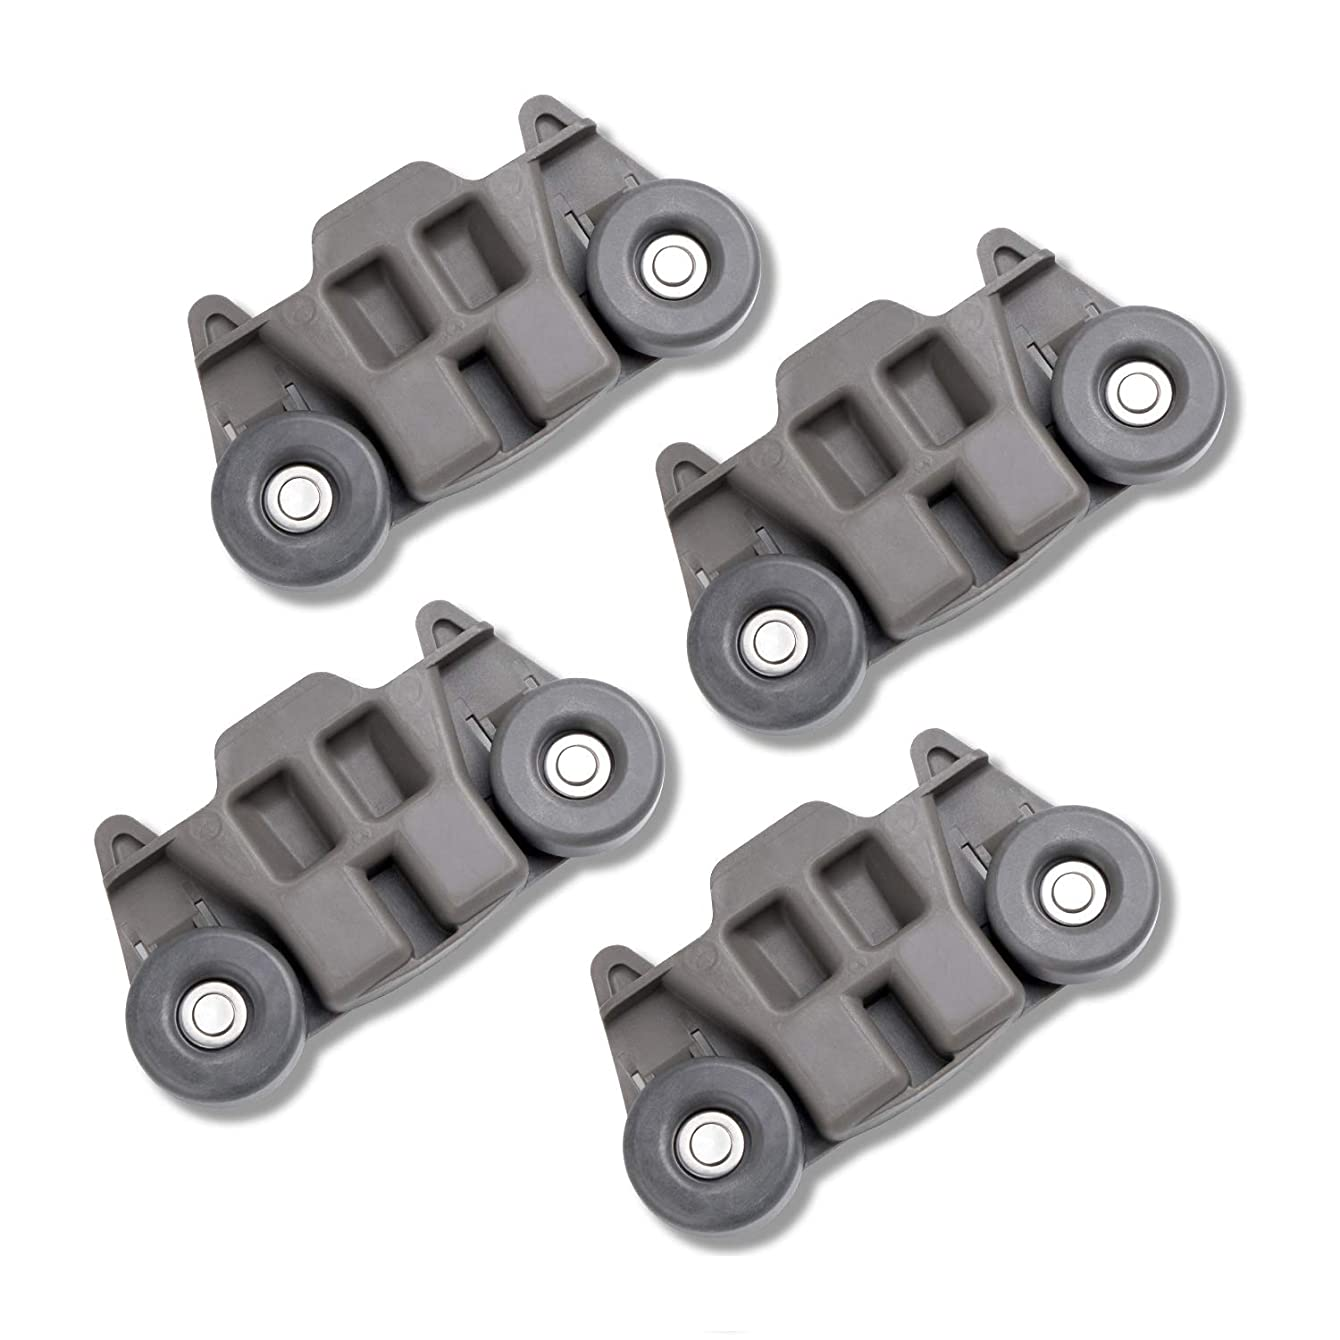 Upgraded W10195416 Dishwasher Lower Rack Wheel Assembly by Hosom, 4pcs Dishrack Roller Replacement Parts Compatible with Kenmore Whirlpool Dishwasher | Replaces for W10195416VP/W10195416V/PS11722152